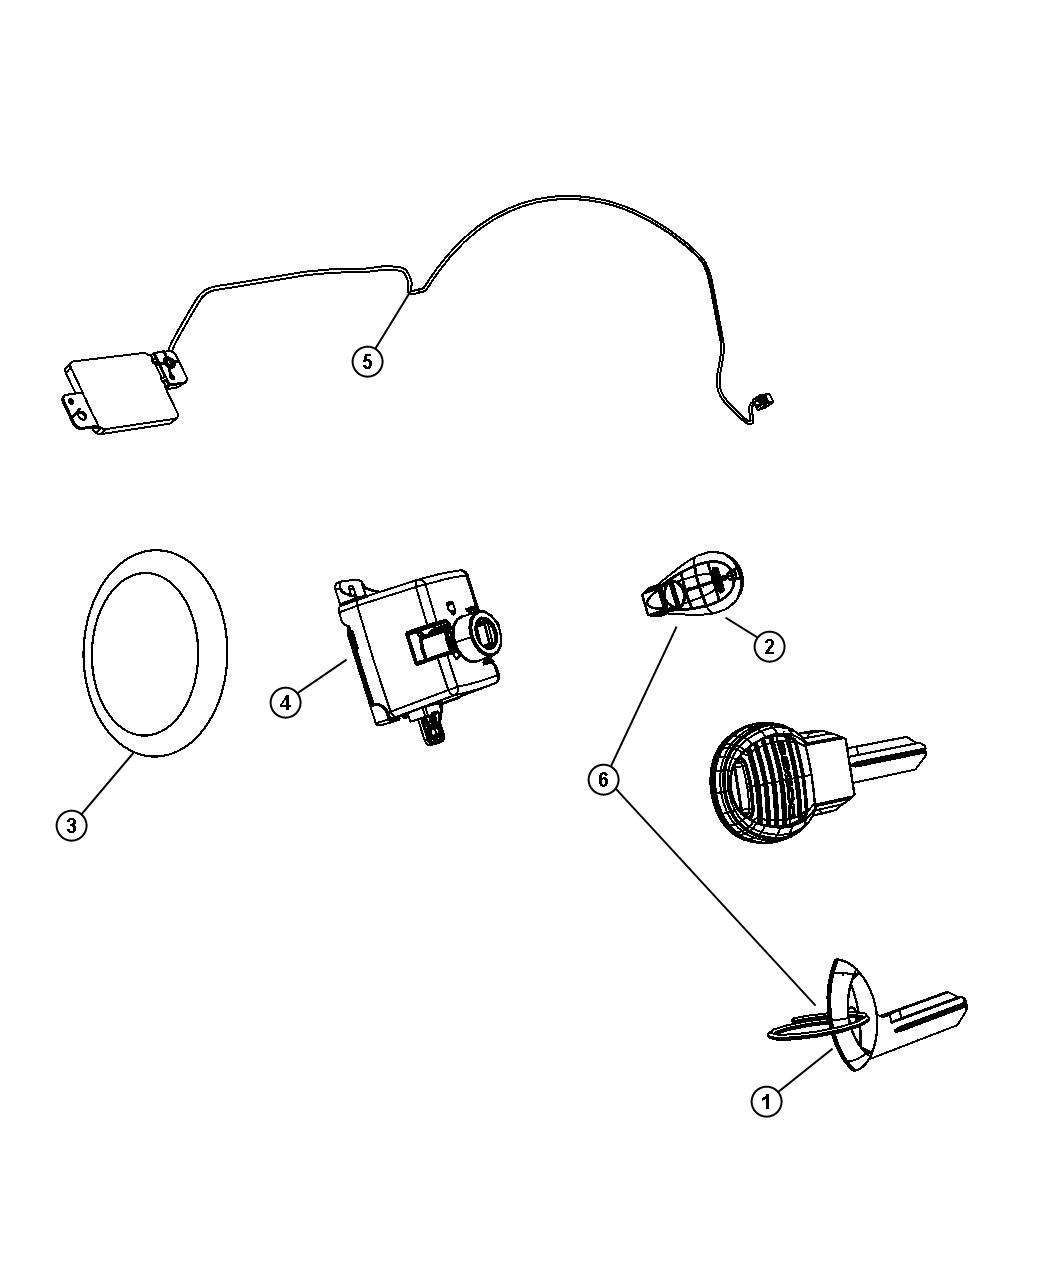 2001 dodge dakota speaker wiring diagram 96 s10 radio grand caravan parts antenna. dodge. auto